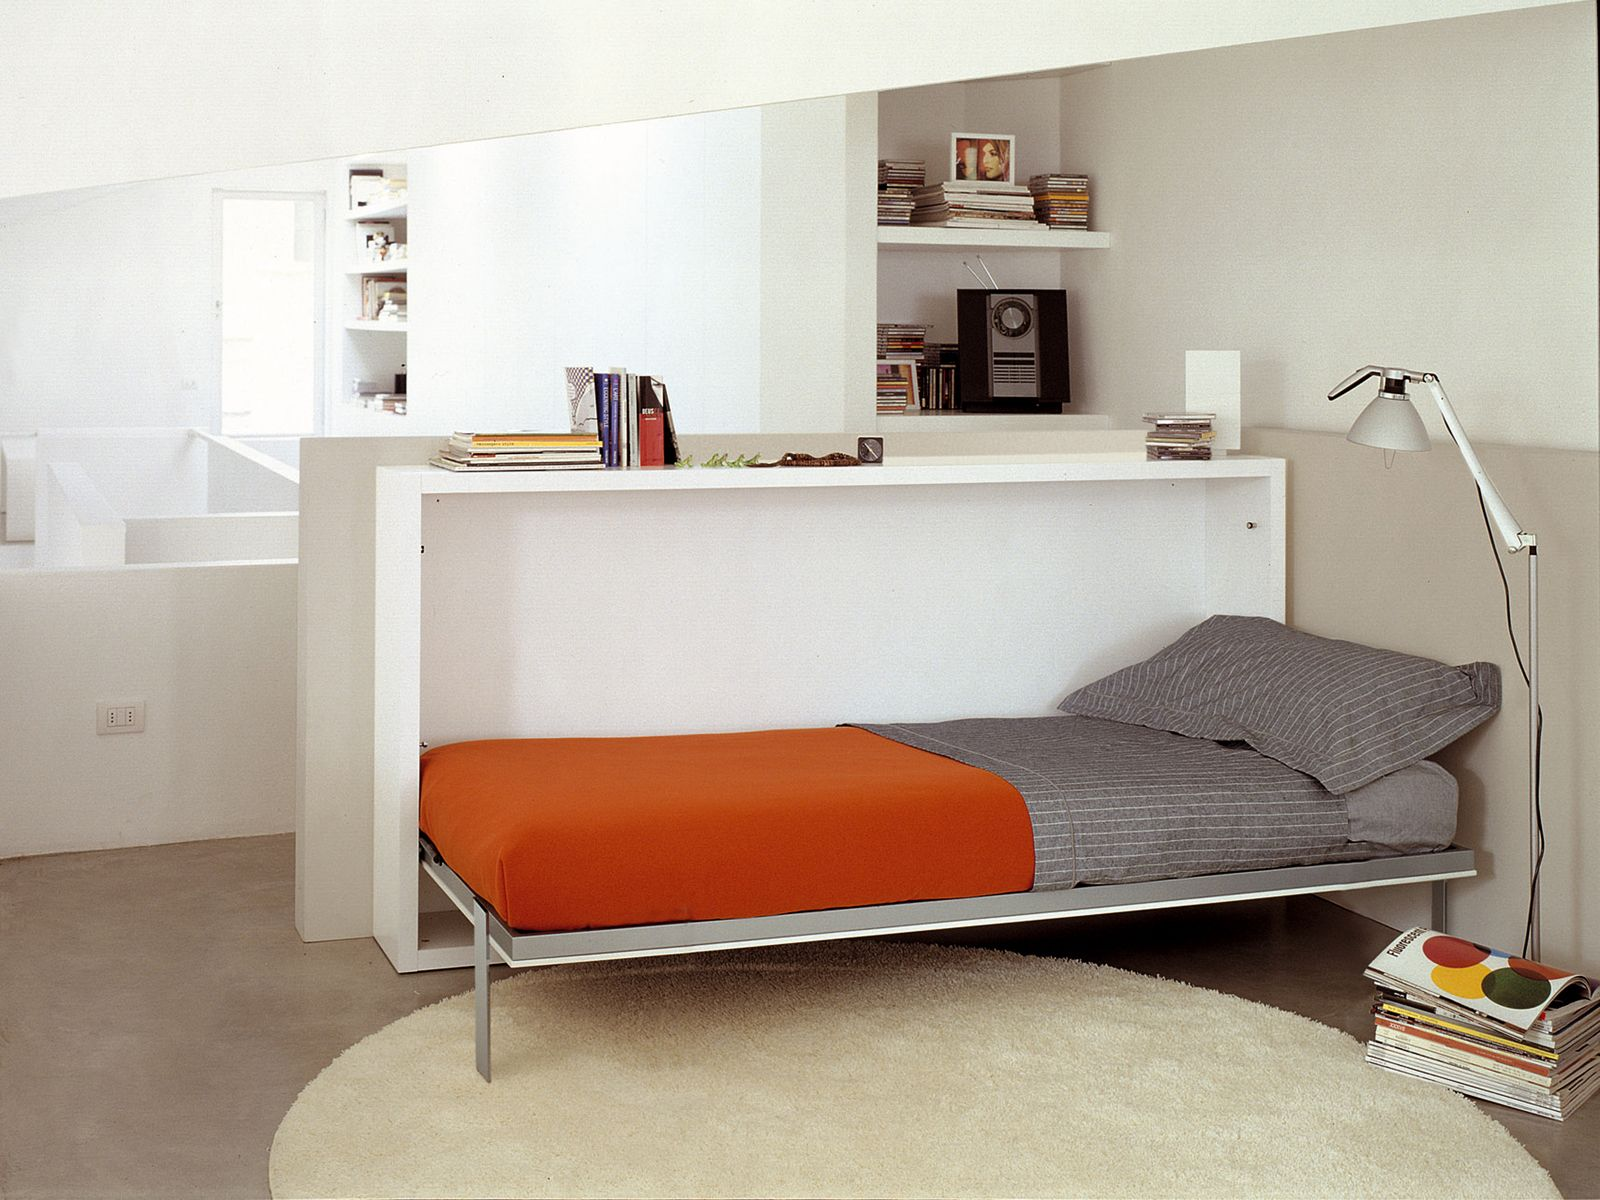 Convertible furniture desk bed - The Poppi Desk Is A Space Saving Wall Bed Murphy Bed With A Fold Down Desk It Is Available In A Twin Size Or An An Intermediate Size Wall Bed